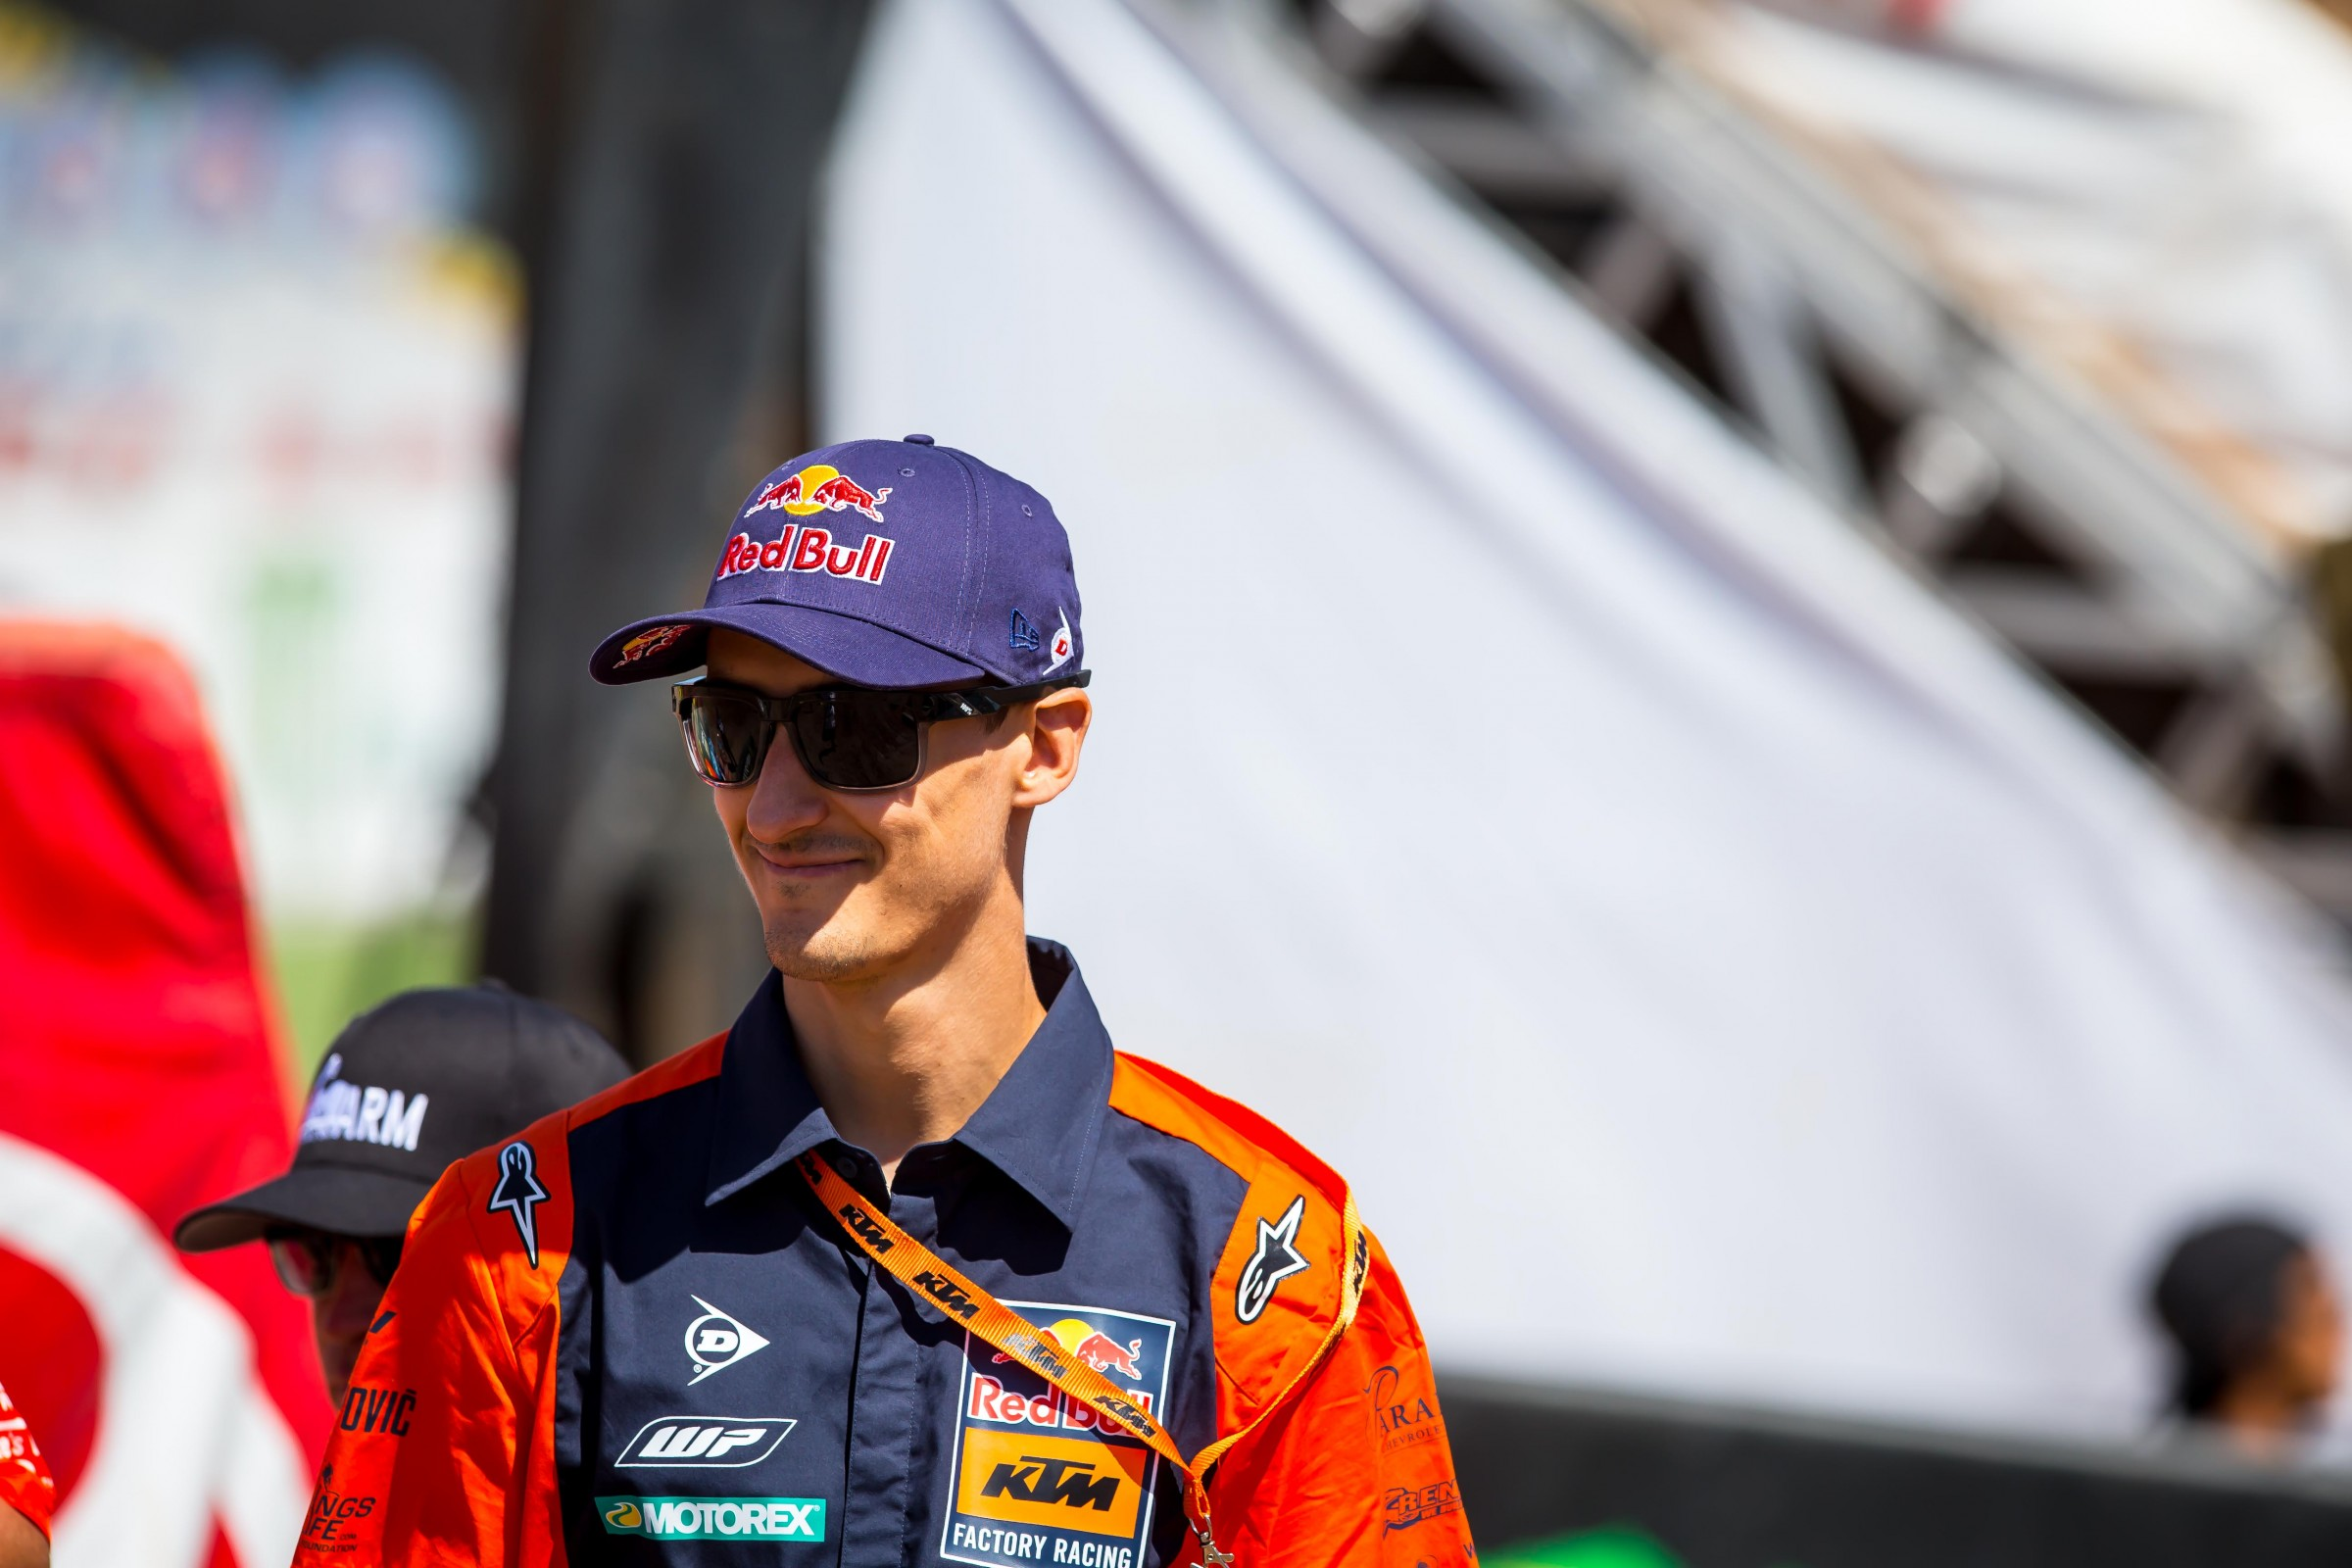 Musquin likes to do most of his therapy the night before the race.